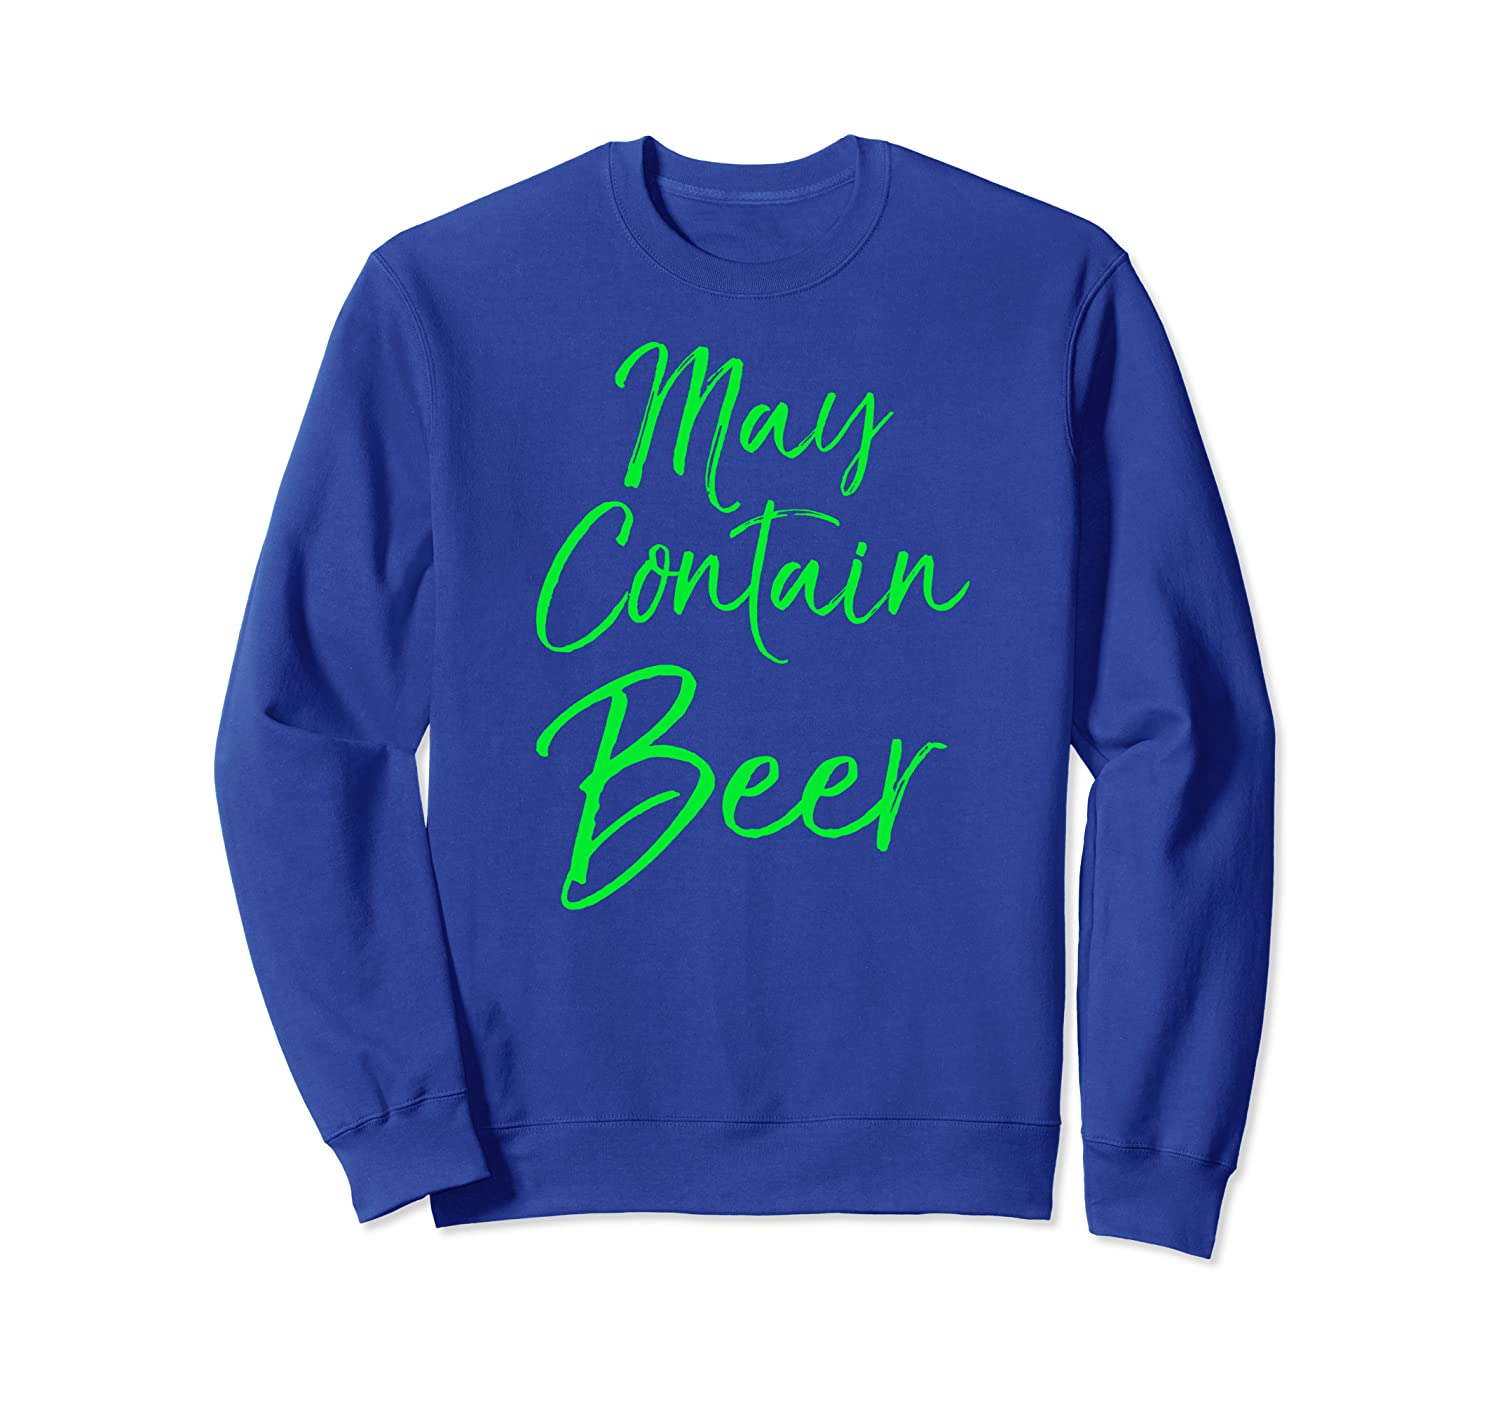 Cute Green St. Patty's Party Quote Funny May Contain Beer Sweatshirt